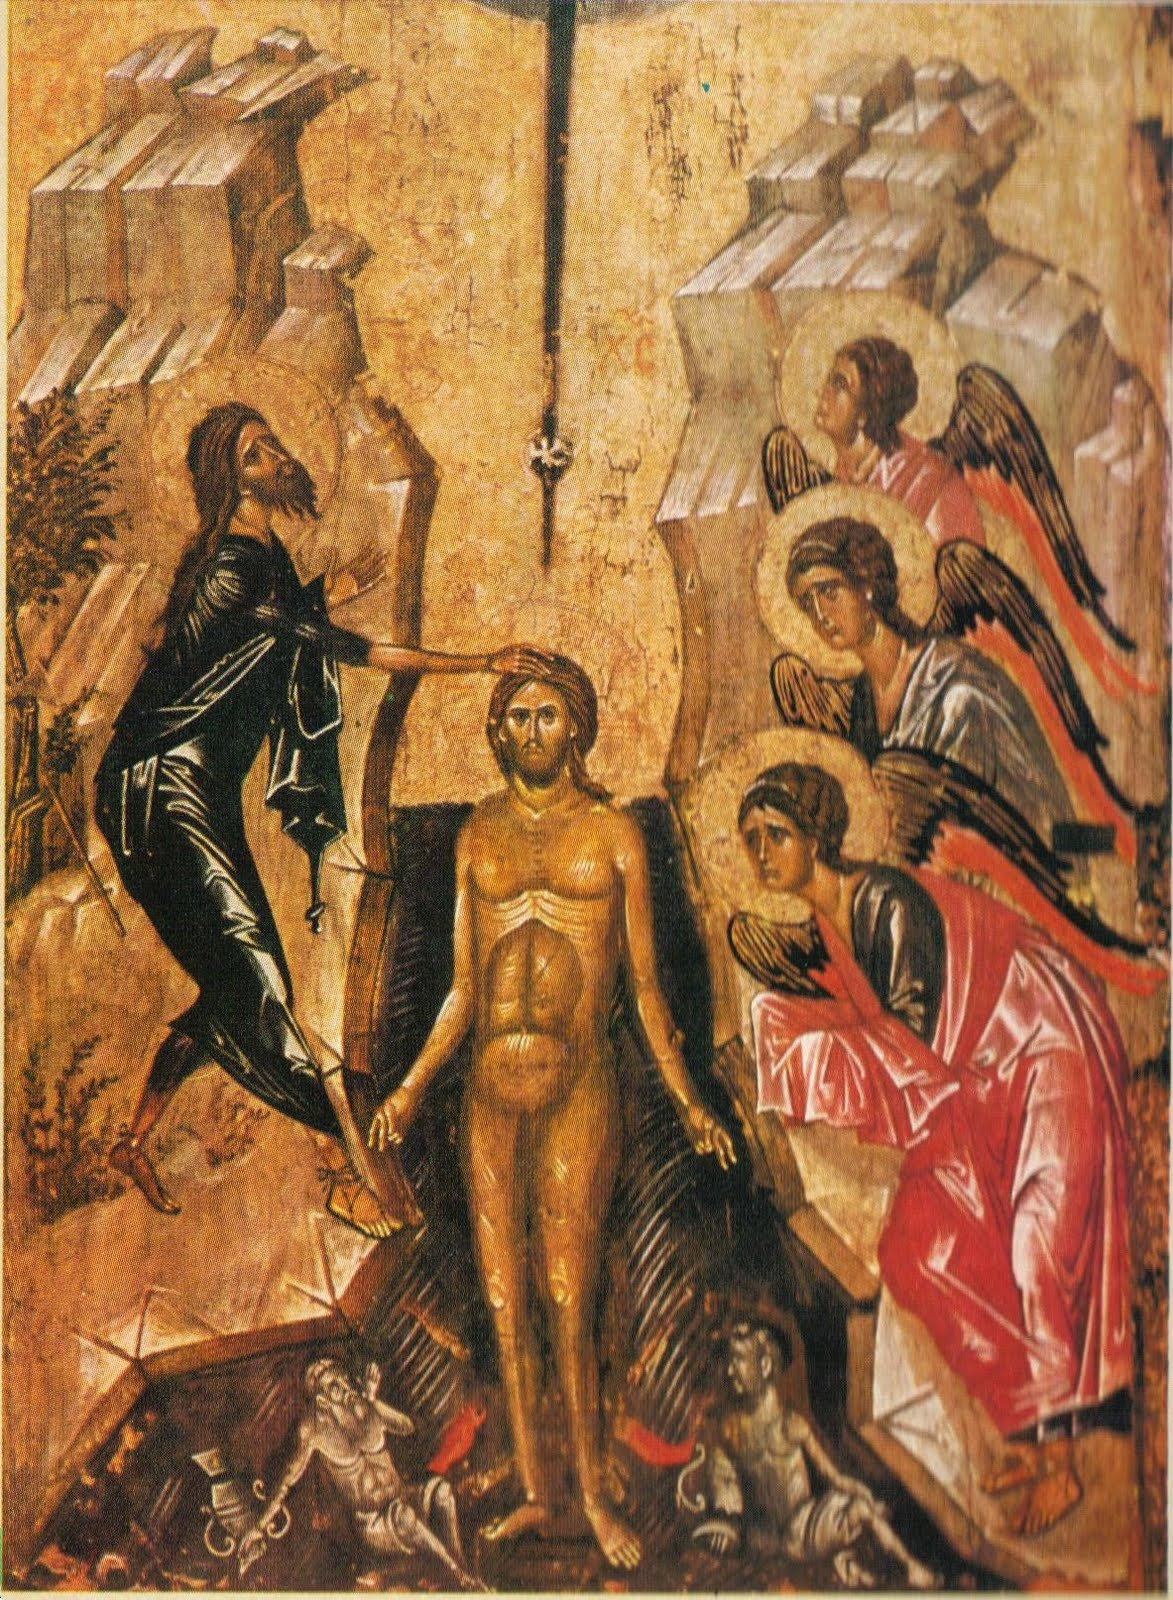 the didache the ritual of baptism On baptism, the didache states that an explanation of baptism must first be presented before the candidate is baptized in a similar way, the nazarene manual presents an outline and liturgy to be presented with the rite of baptism.